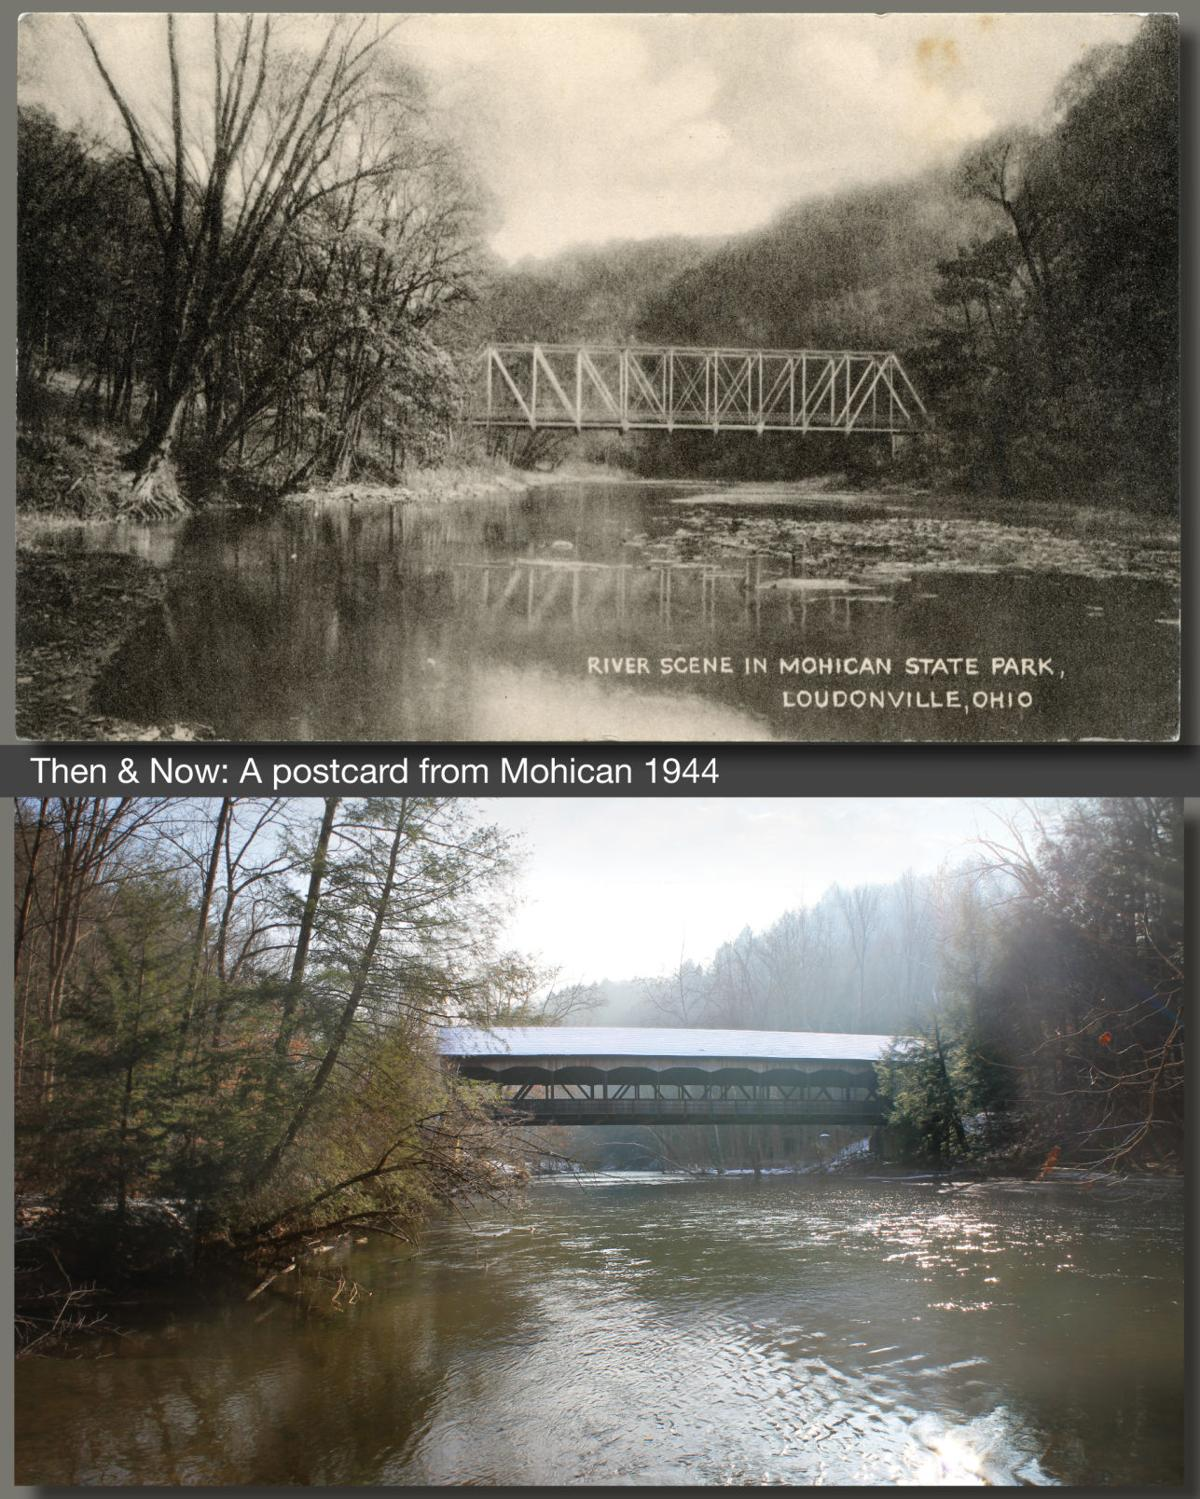 Then & Now: Mohican bridge from a postcard 1944